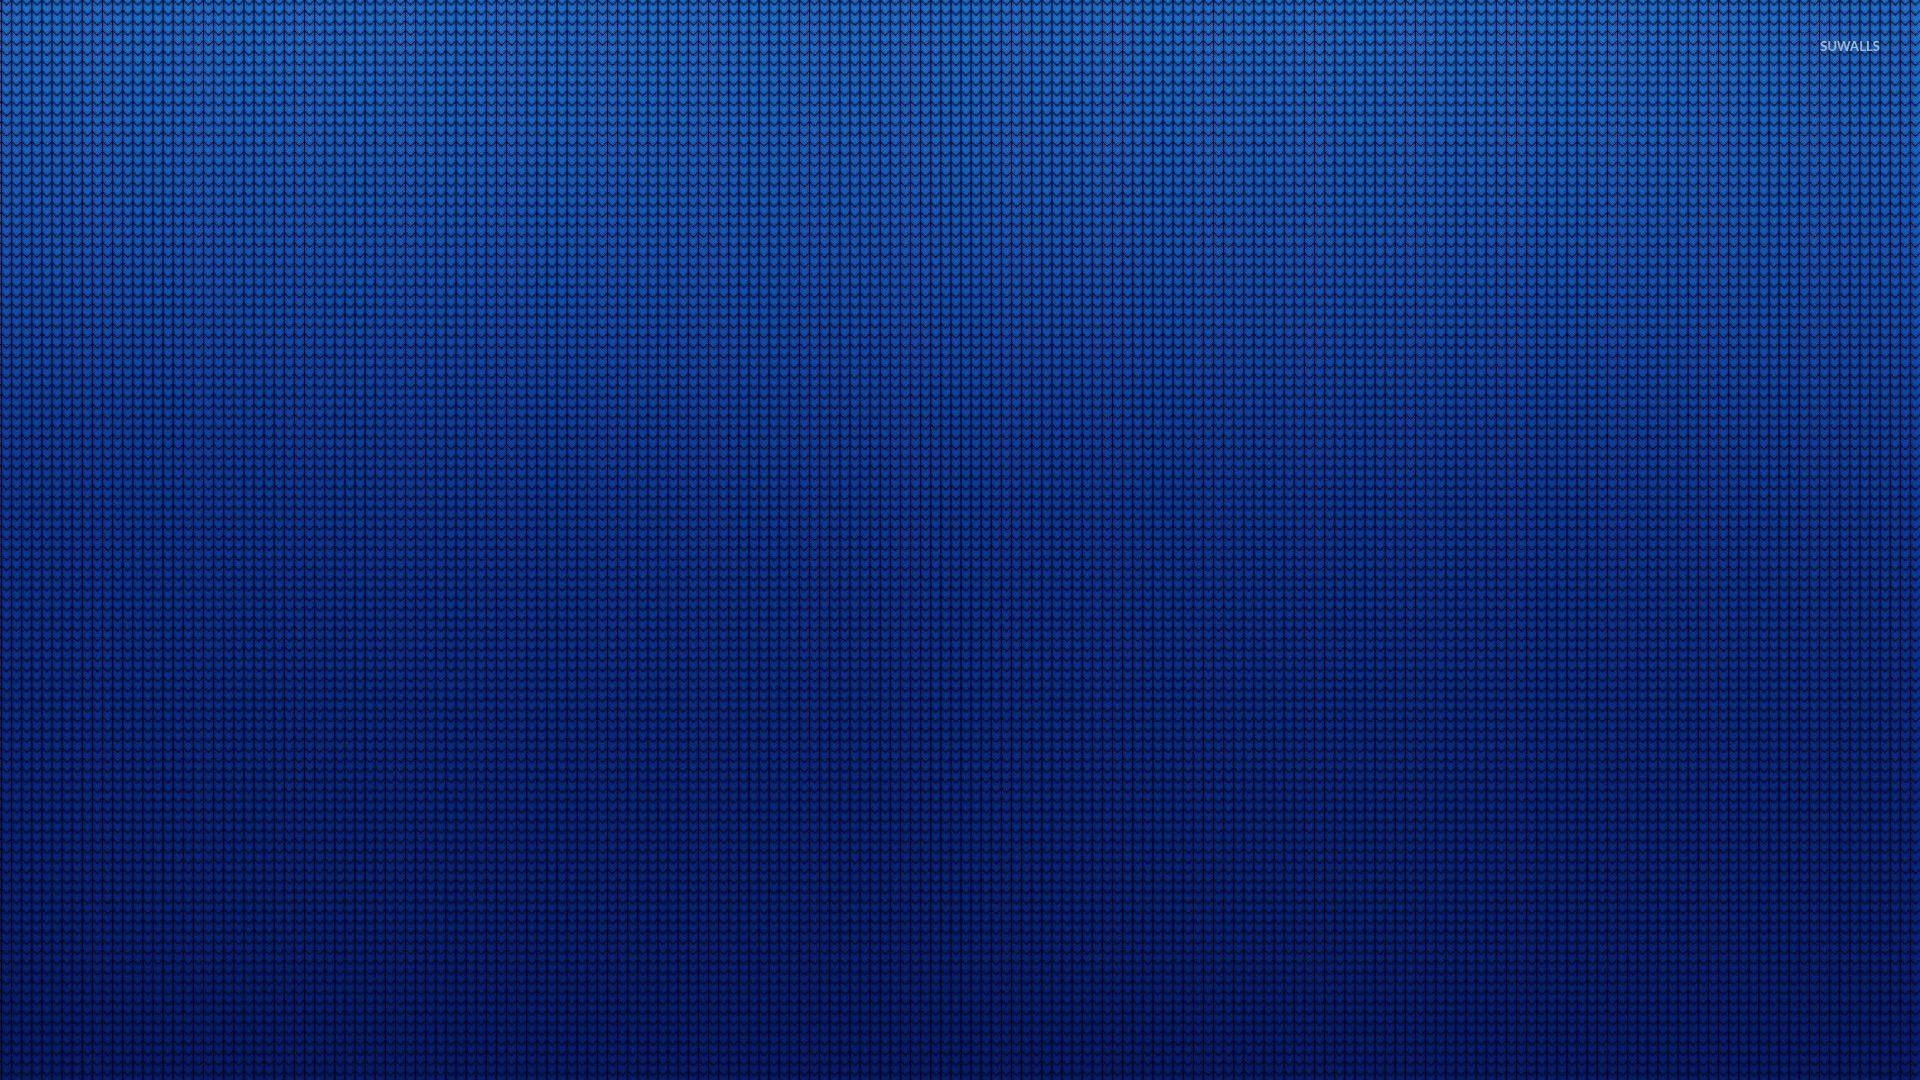 Blue pattern wallpaper – Abstract wallpapers – #26263